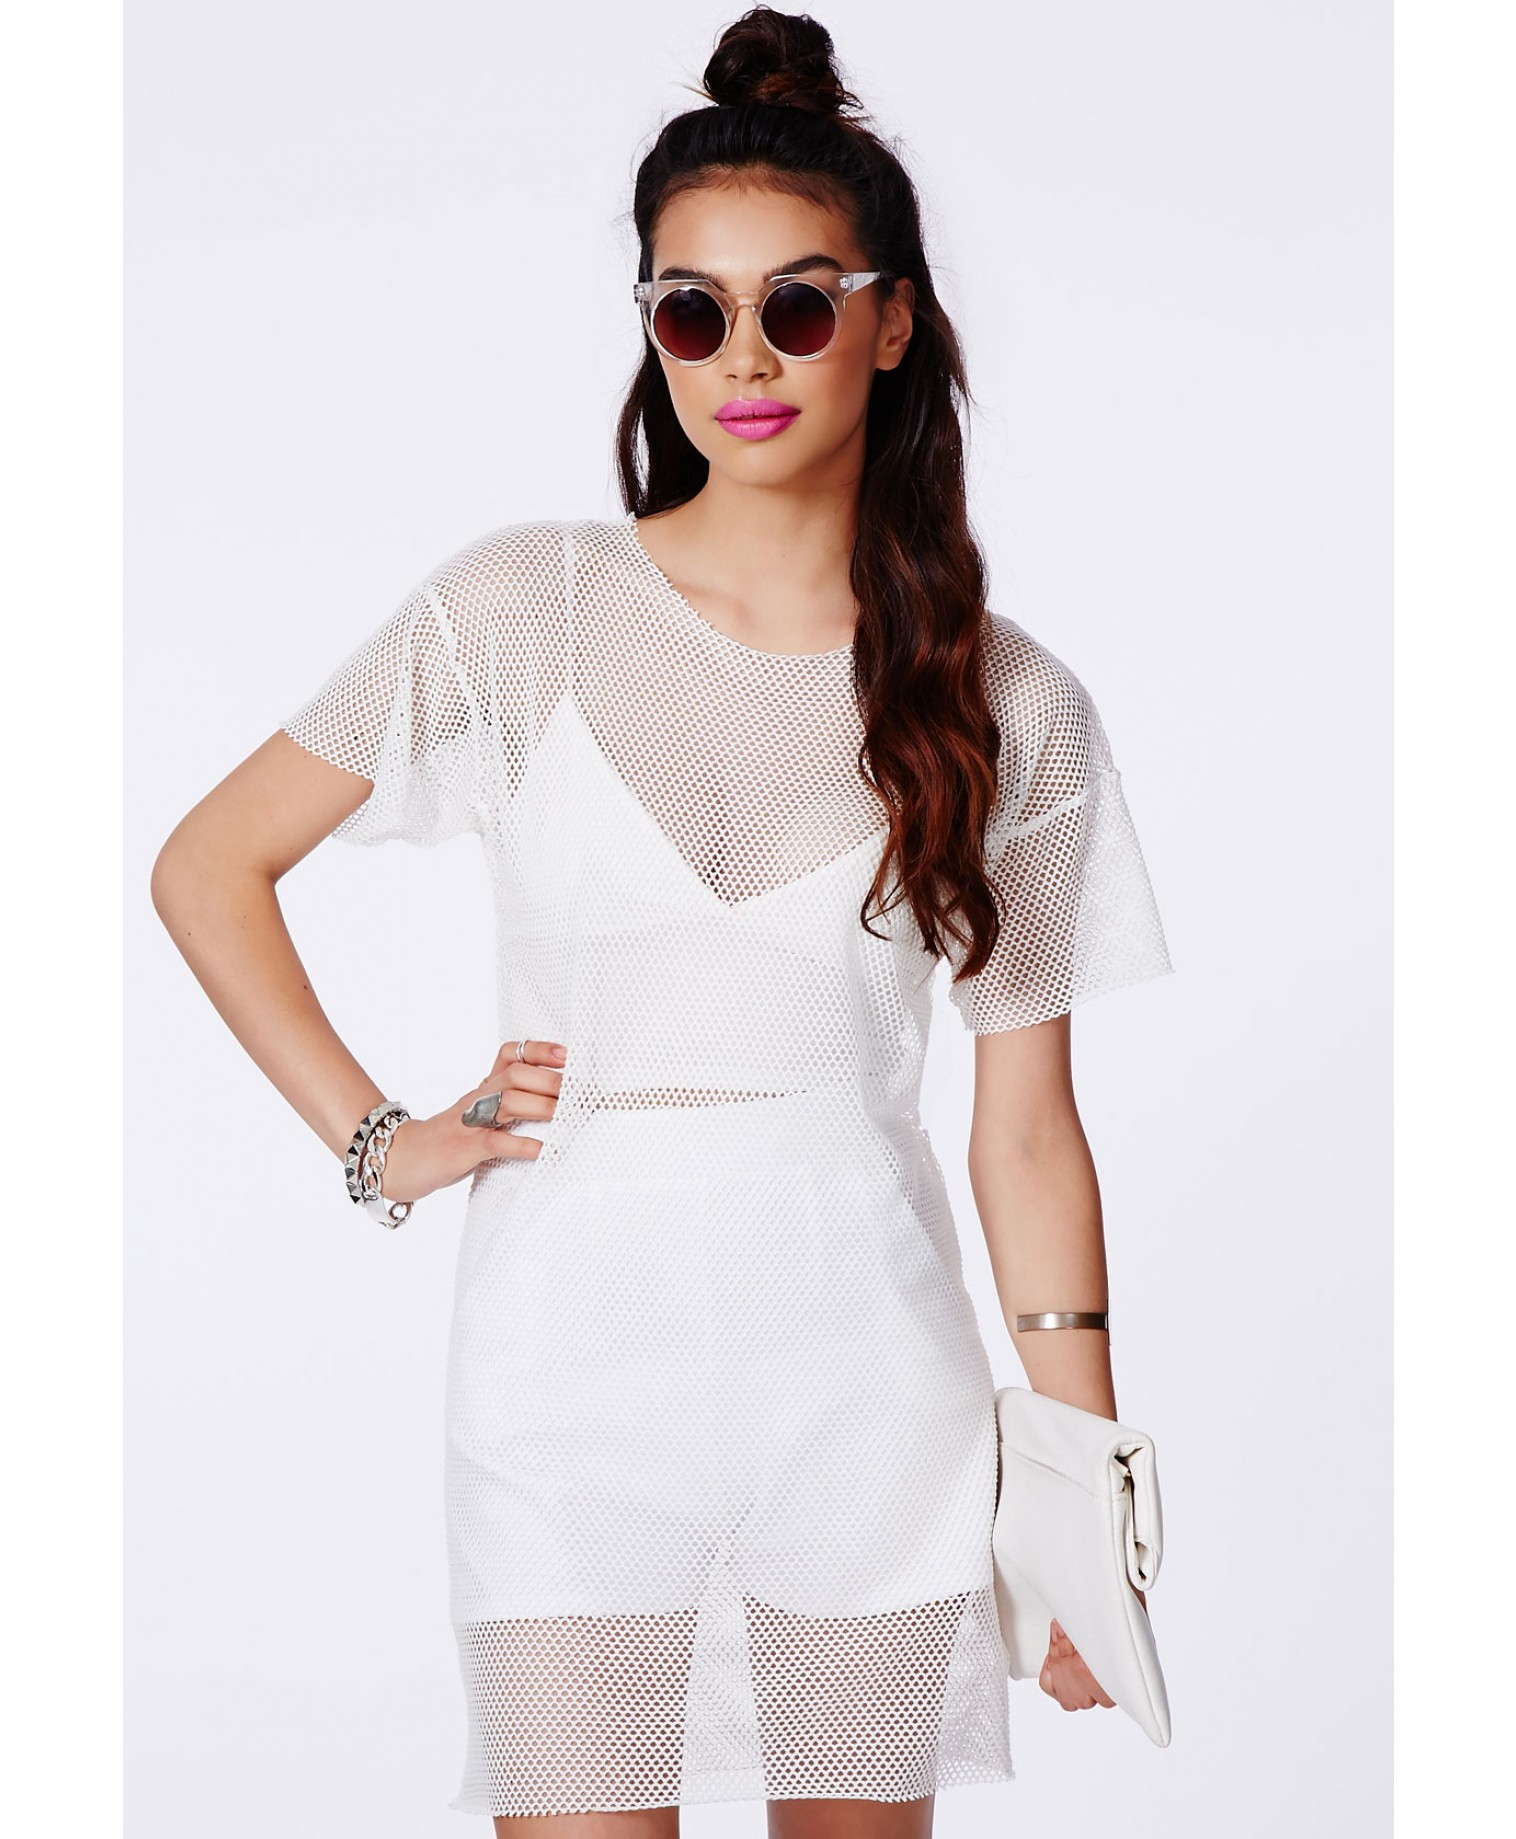 missguided gretka white fishnet tshirt dress in white lyst